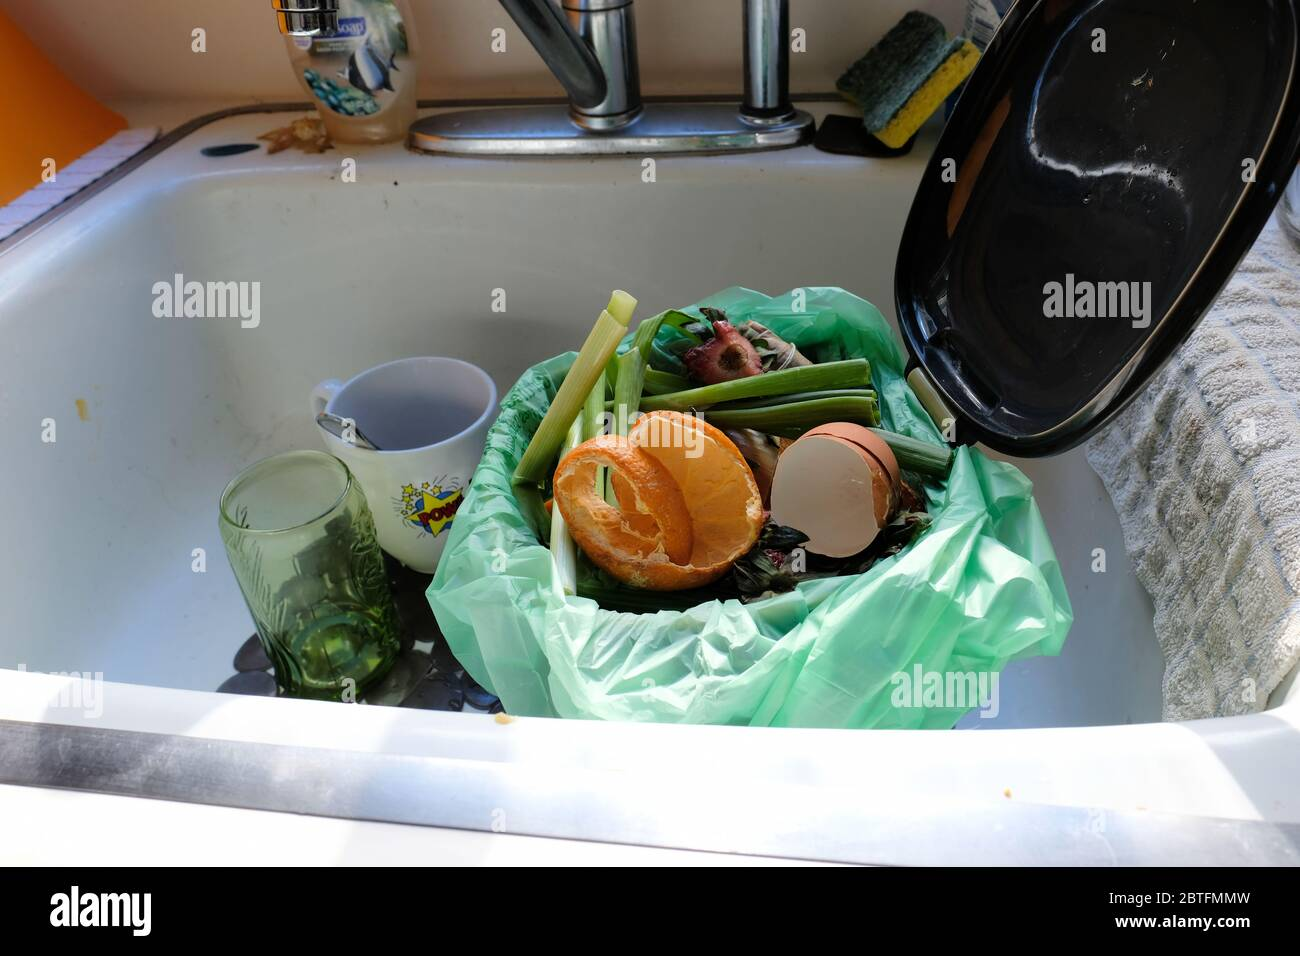 https www alamy com food scraps in a compost bin in a kitchen sink food waste collected in a bin for home composting and gardening image359304649 html